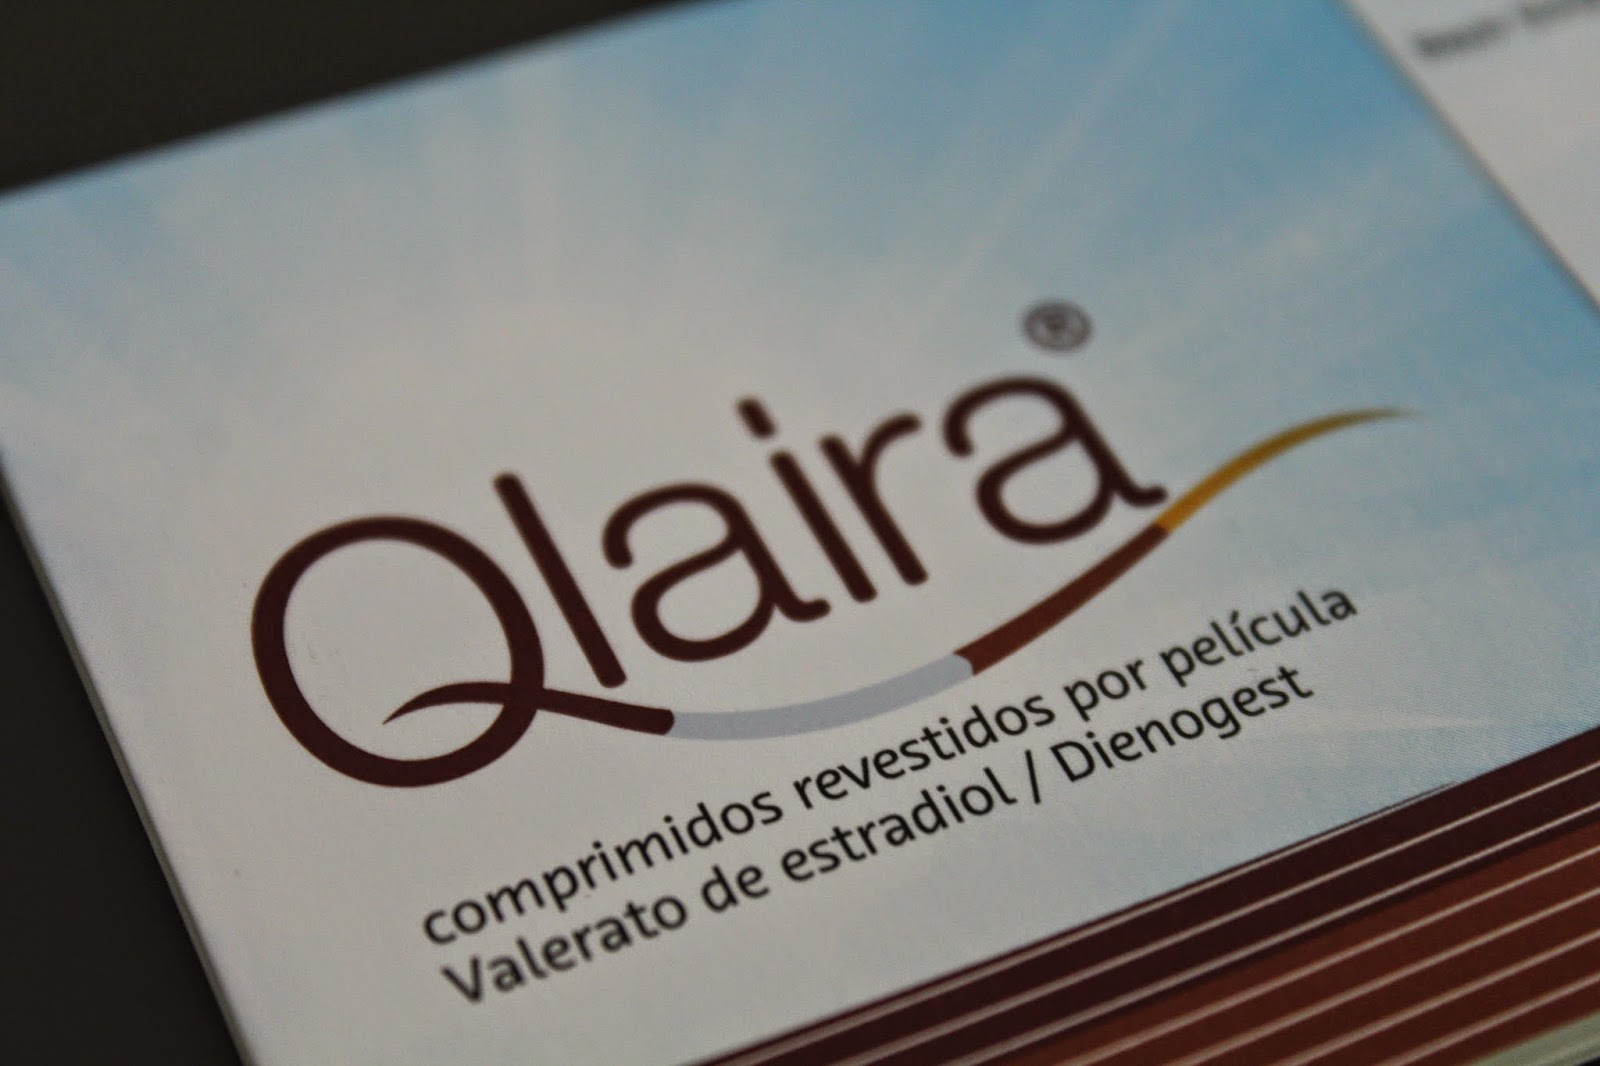 Os efeitos colaterais do anticoncepcional qlaira®